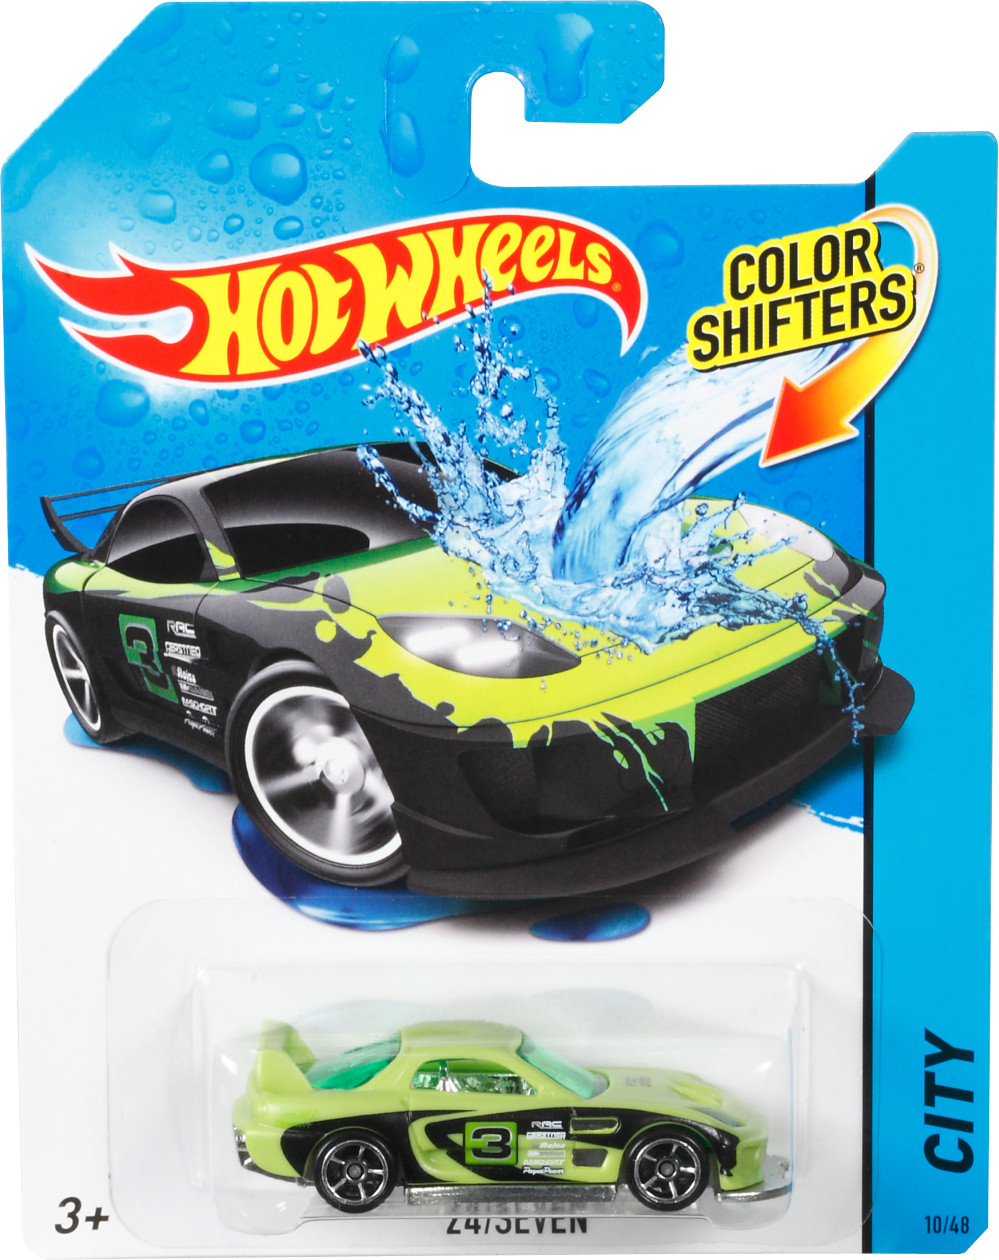 hot wheels color shifters 24 seven color shifters 24. Black Bedroom Furniture Sets. Home Design Ideas